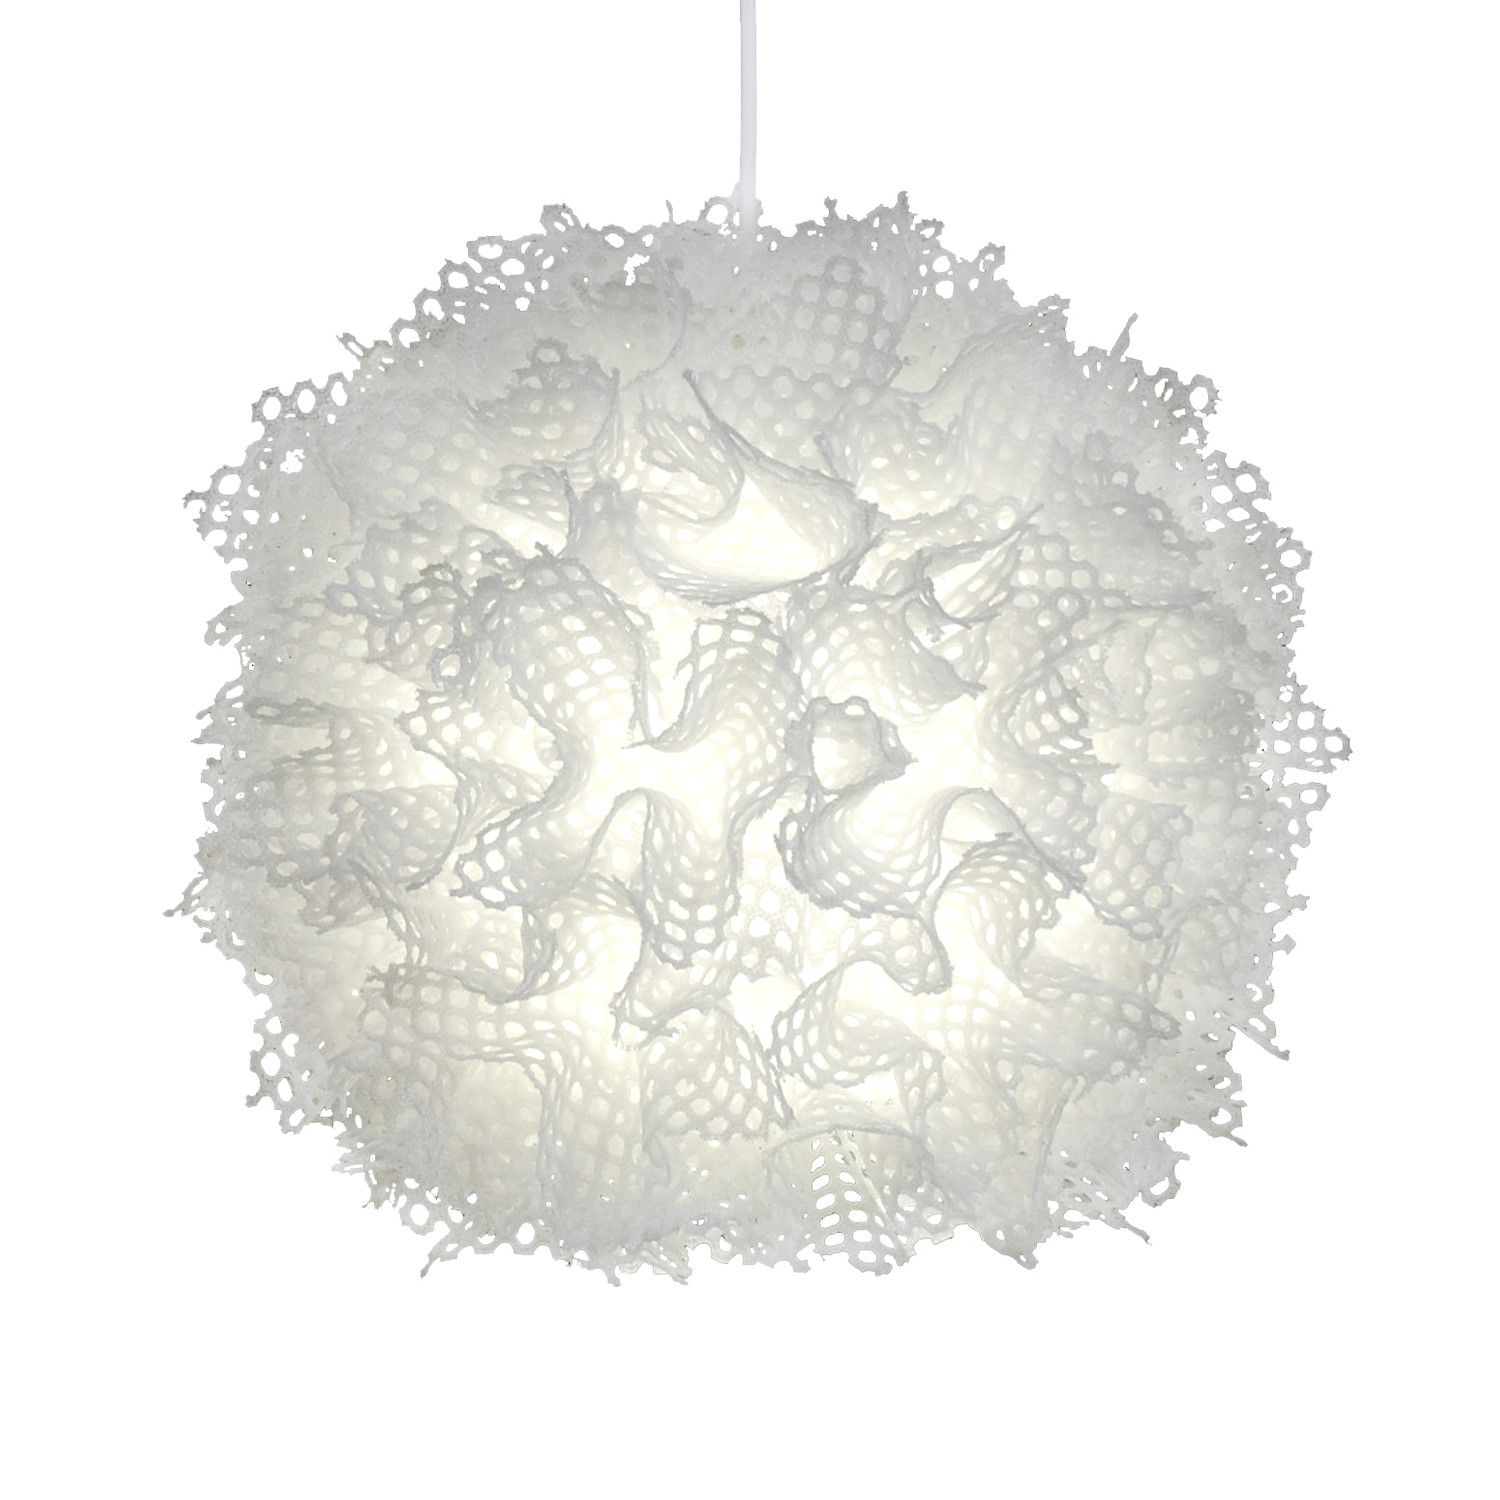 Gorgeous and modern light fixture - almost looks like bubble wrap.